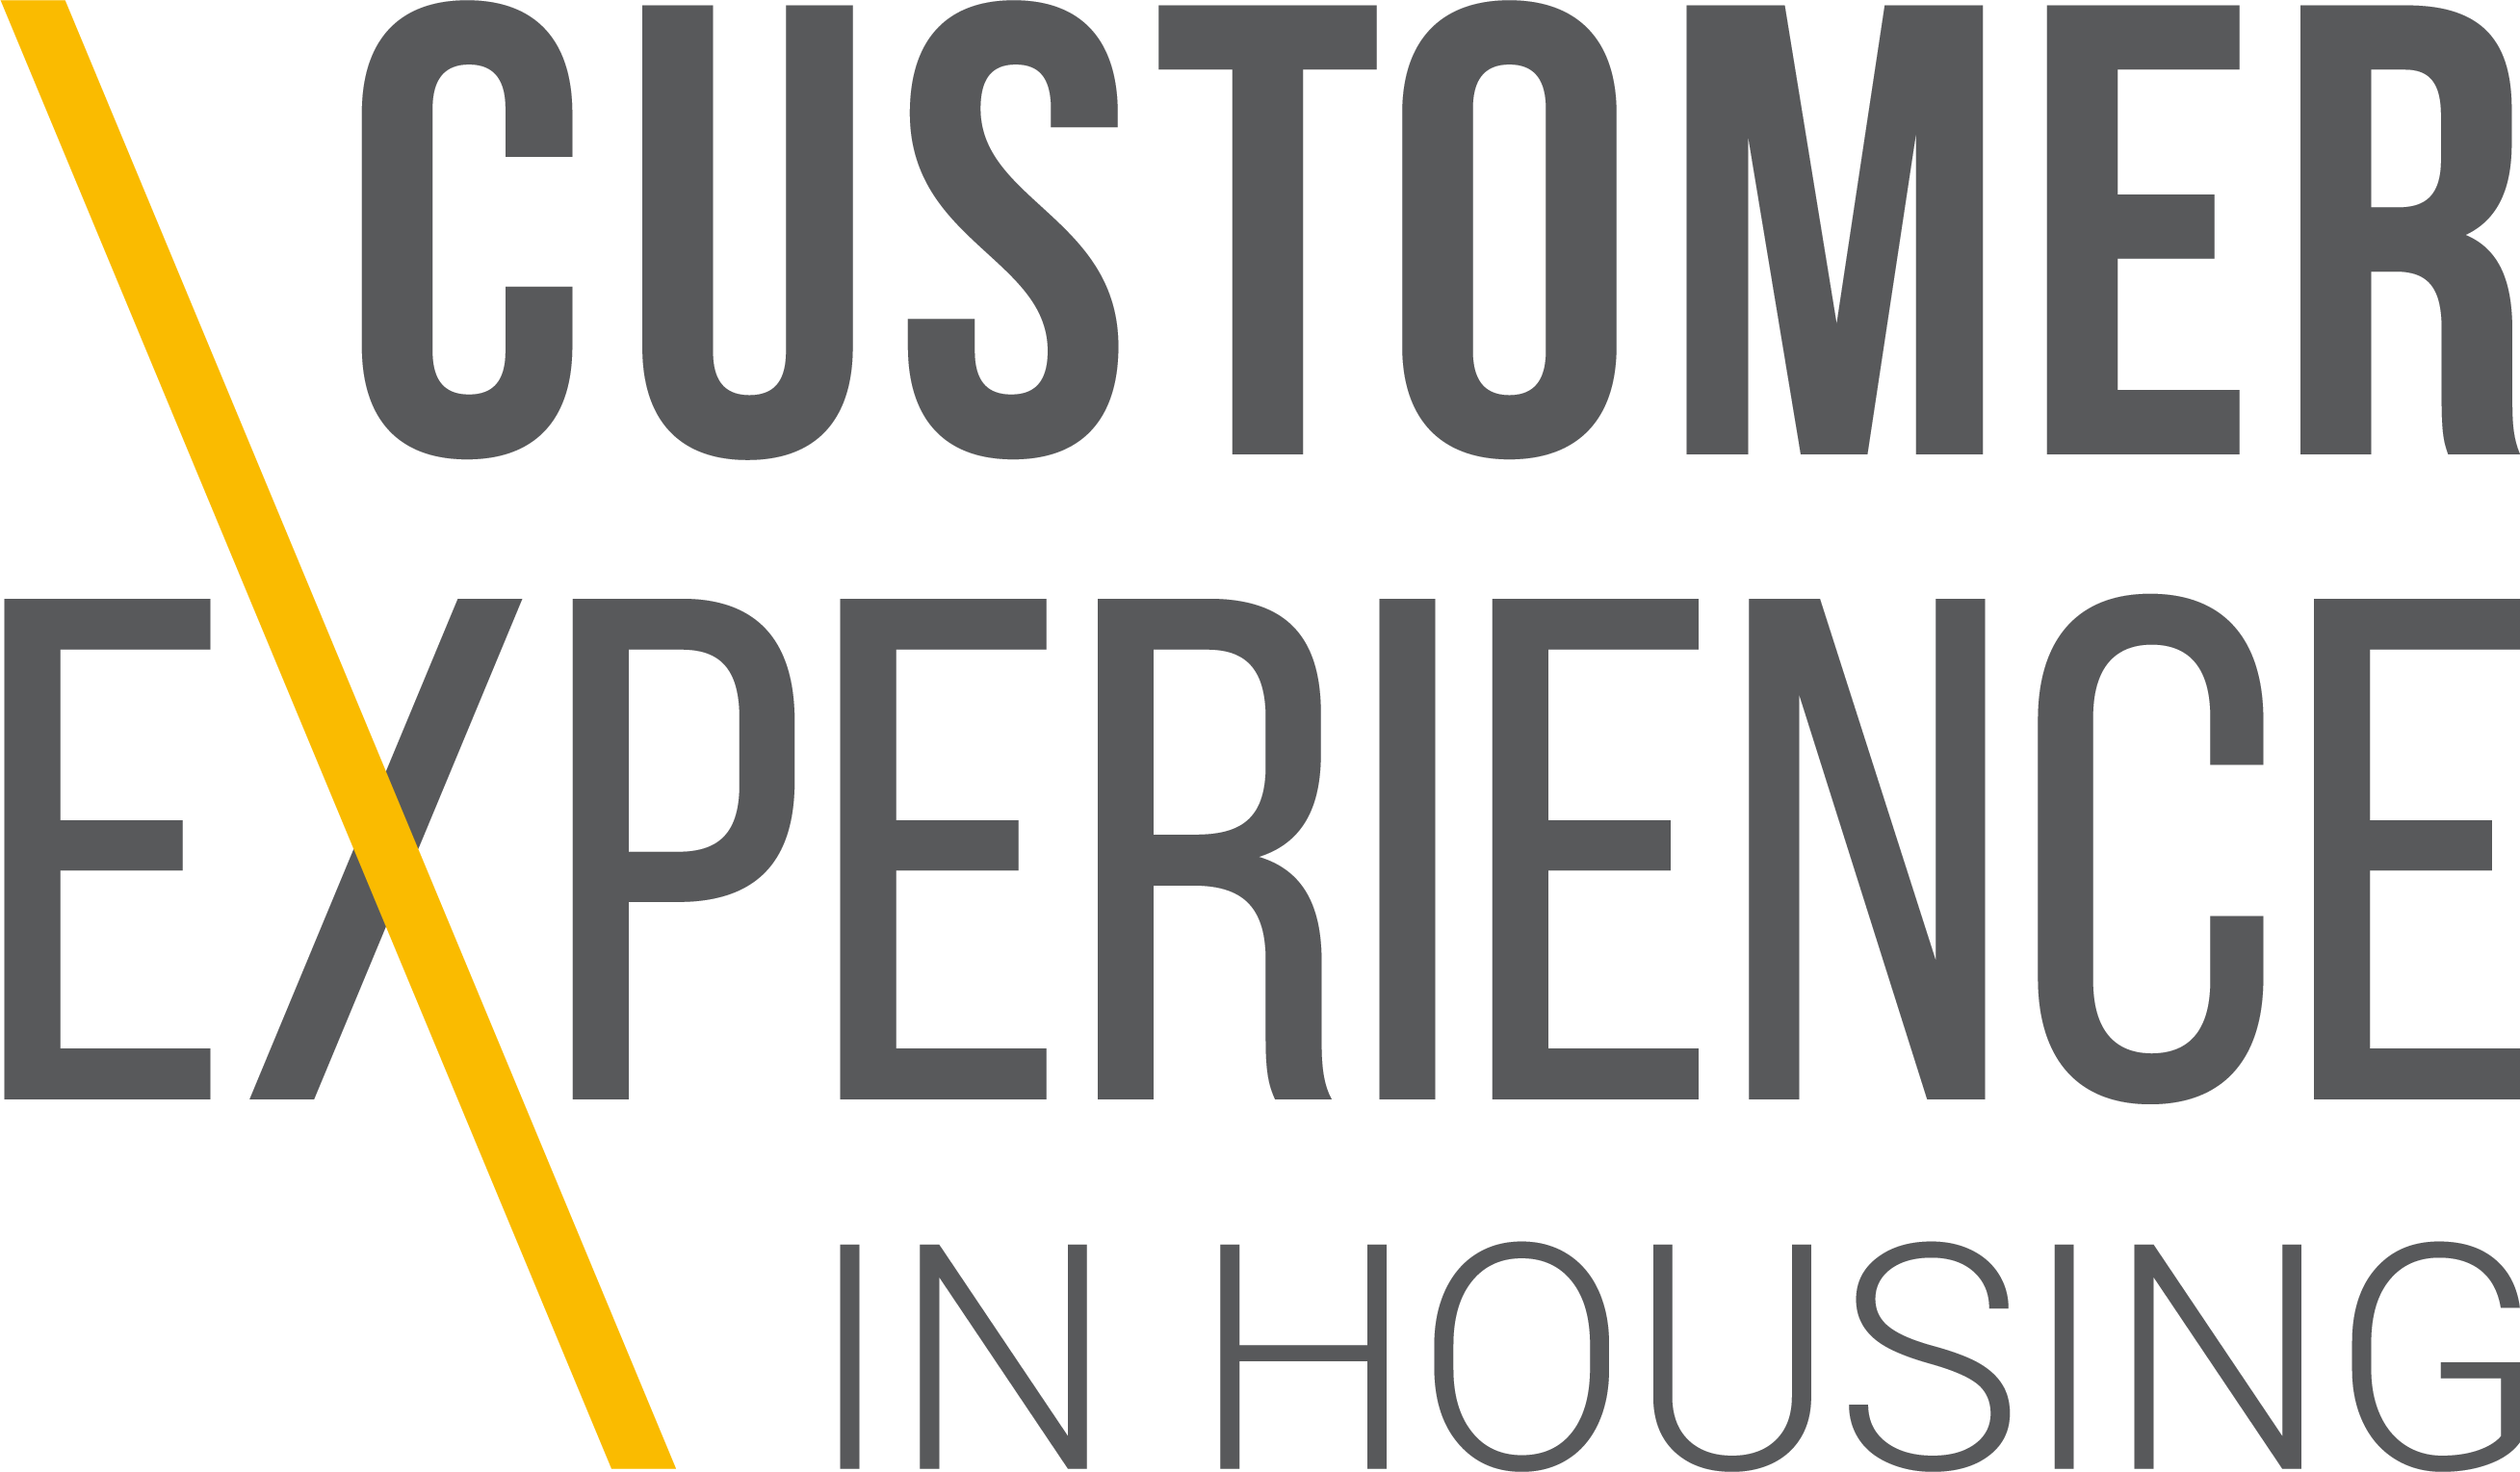 Customer Experience in Housing